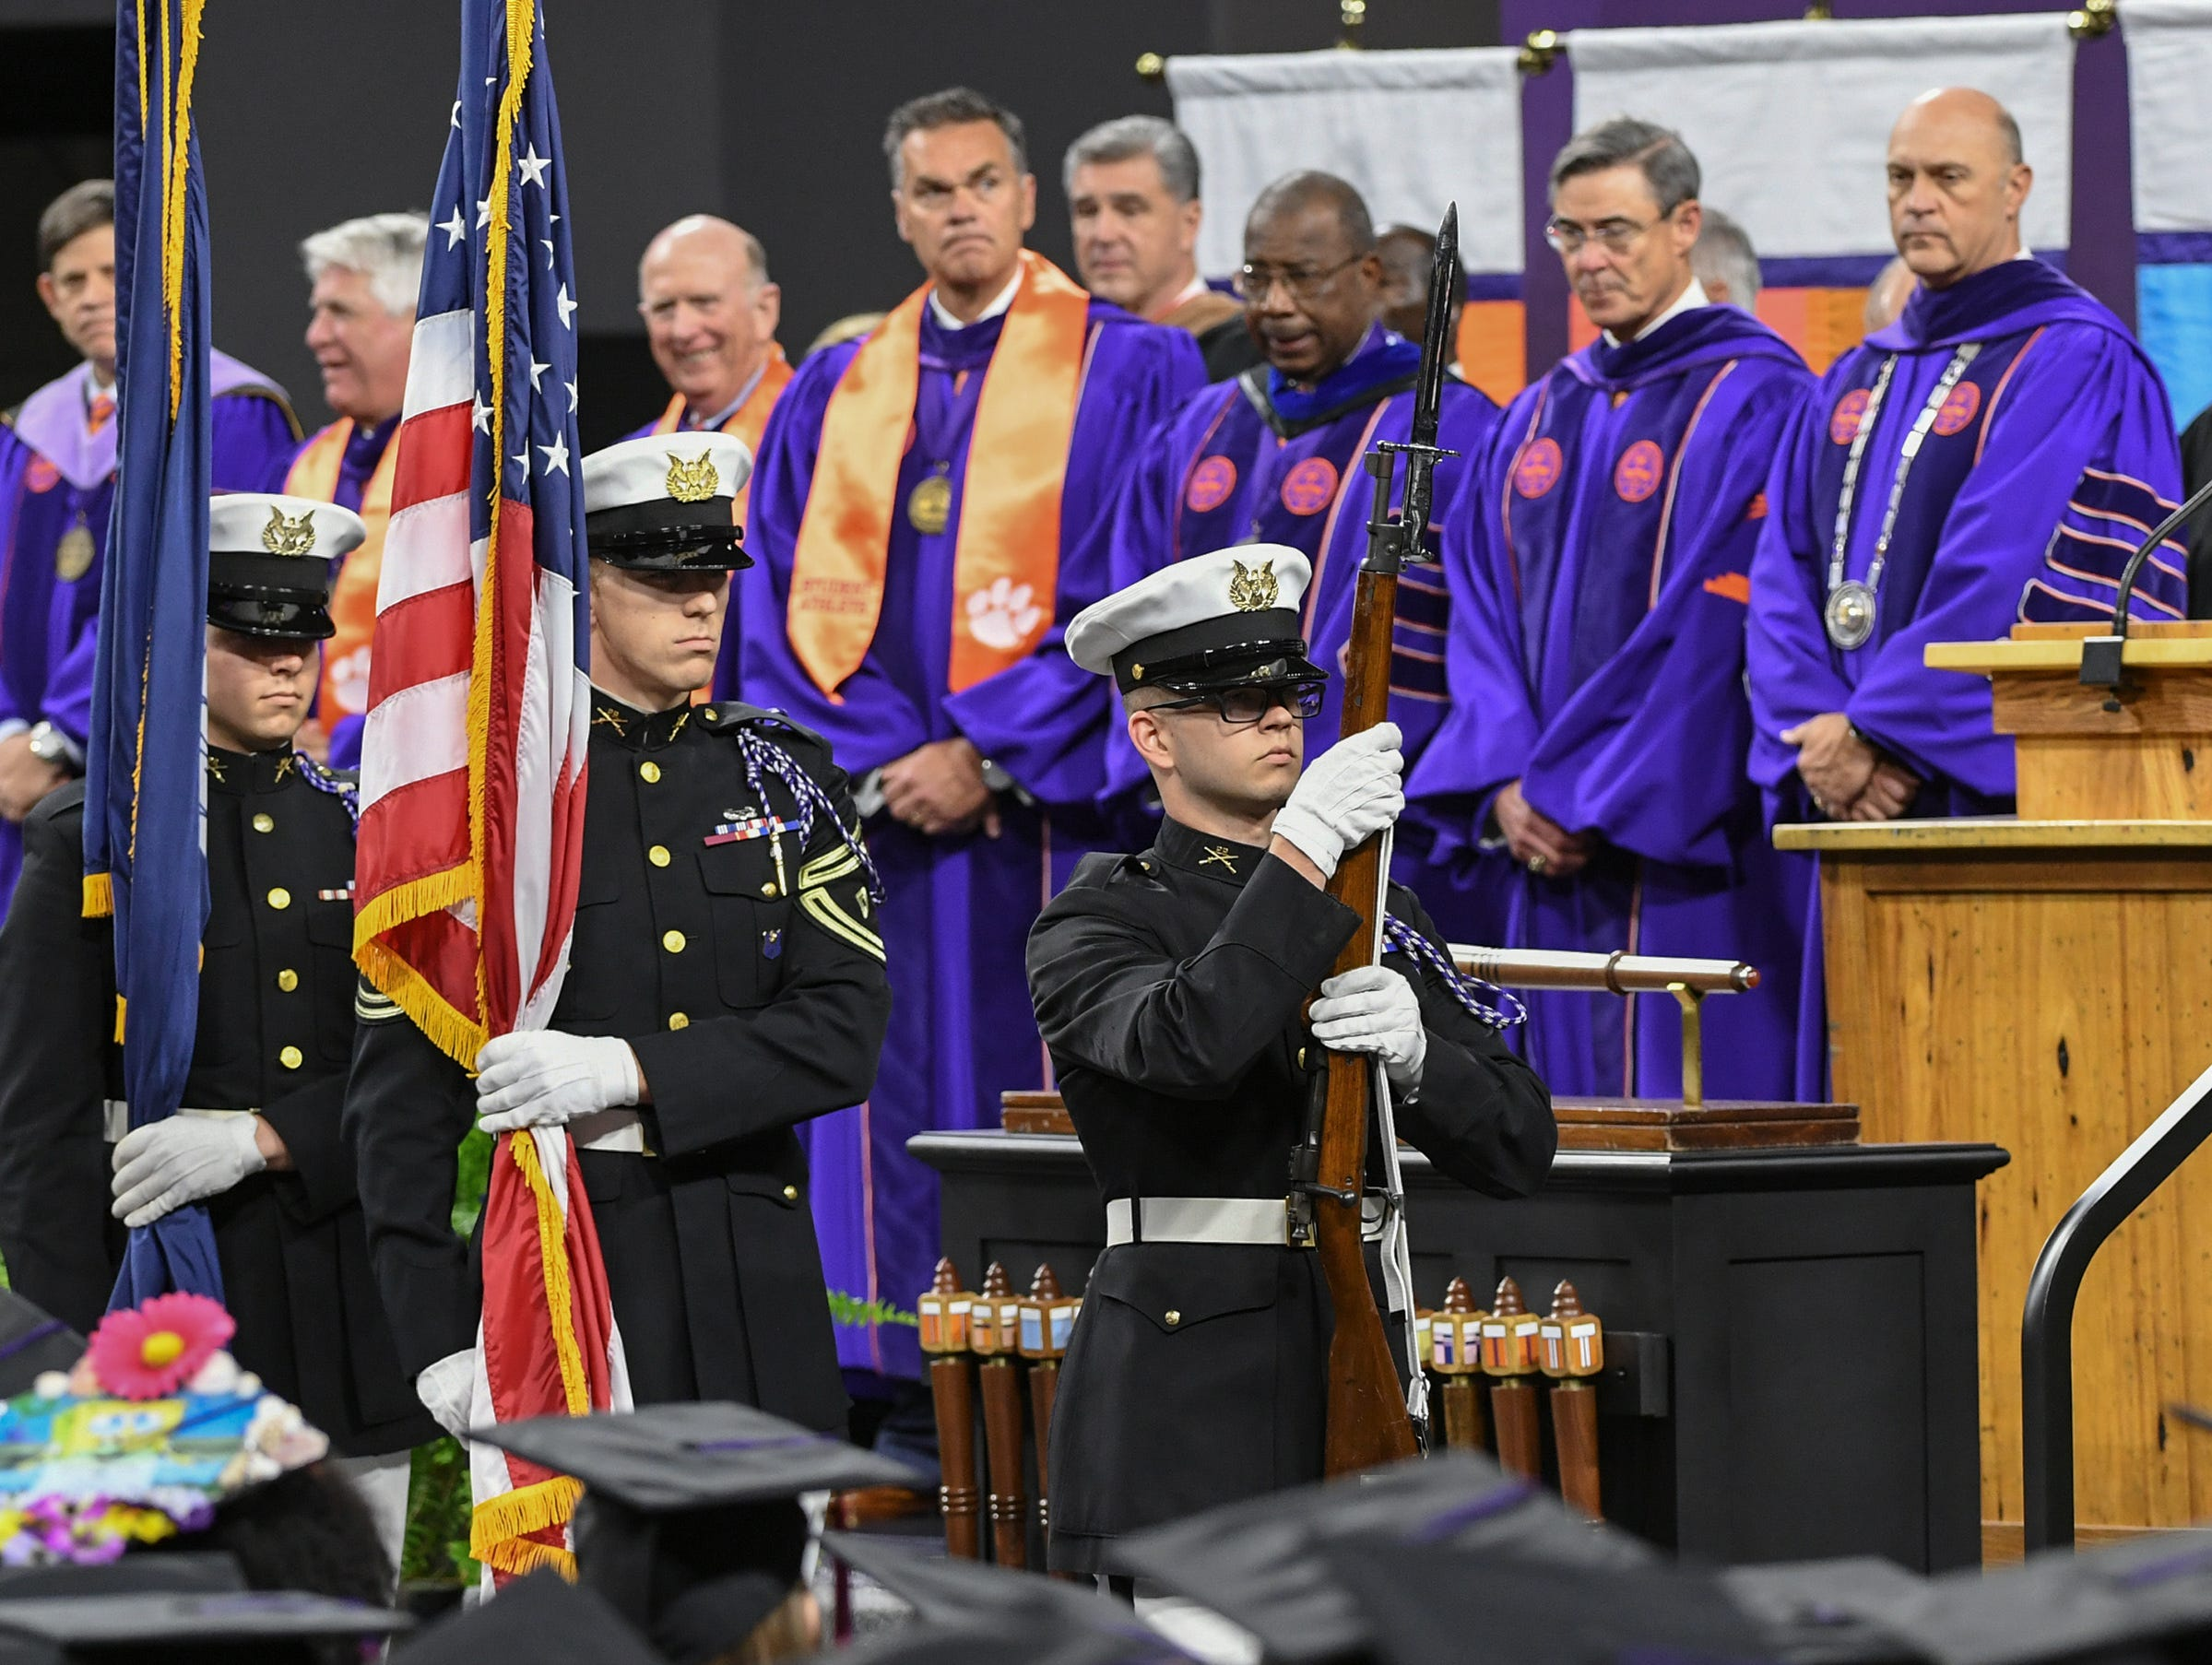 Clemson University Pershing Rifles C4 post colors, walking by the Board of Trustees for the National Anthem during Clemson University commencement ceremonies in Littlejohn Coliseum in Clemson Friday, May 10, 2019.